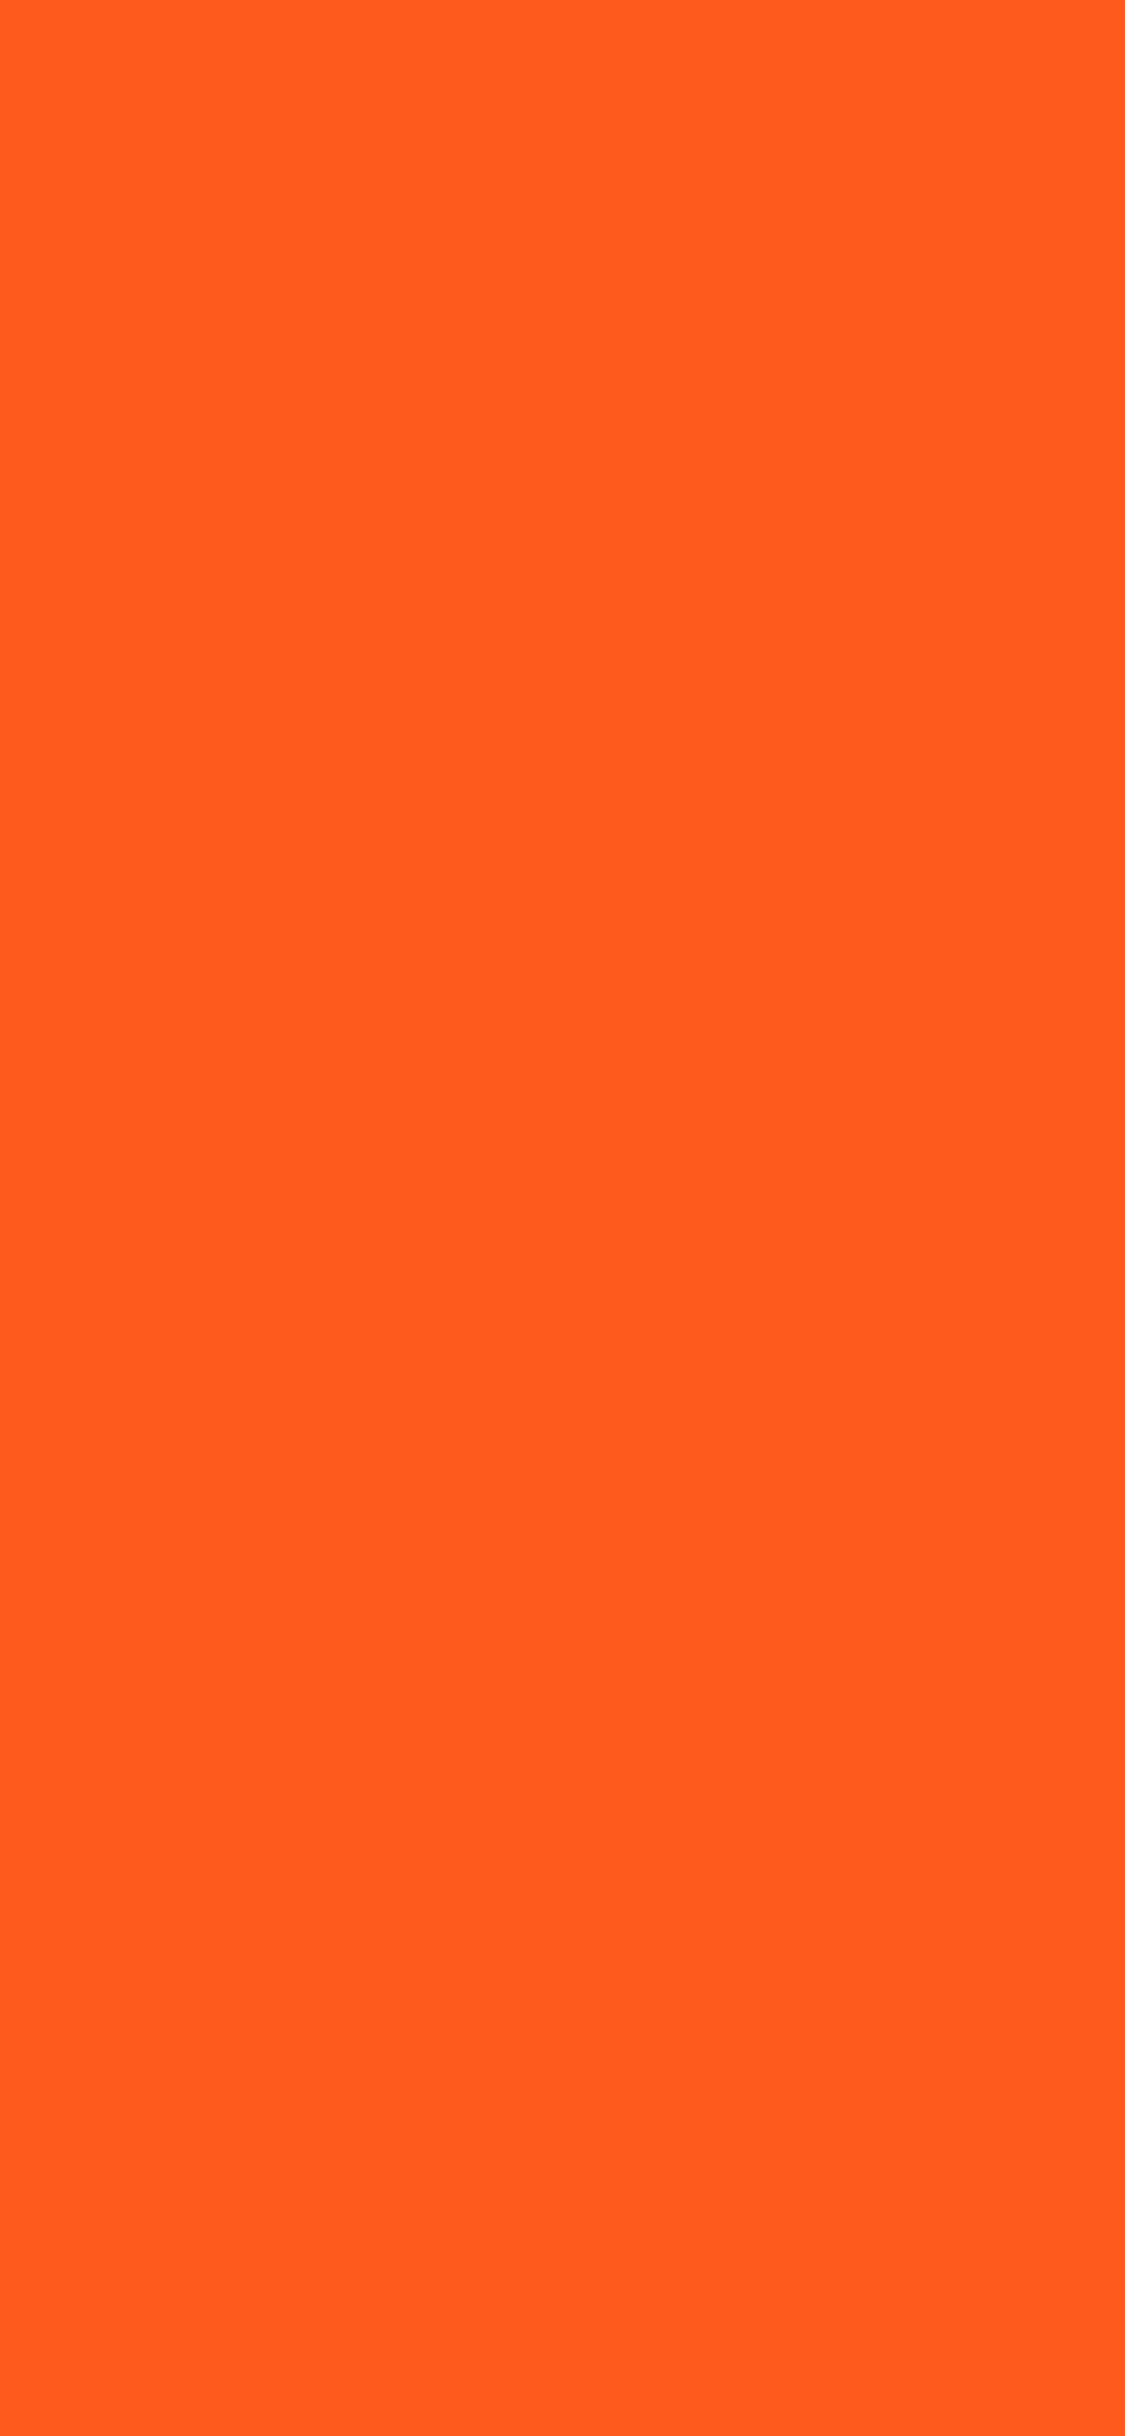 1125x2436 Giants Orange Solid Color Background